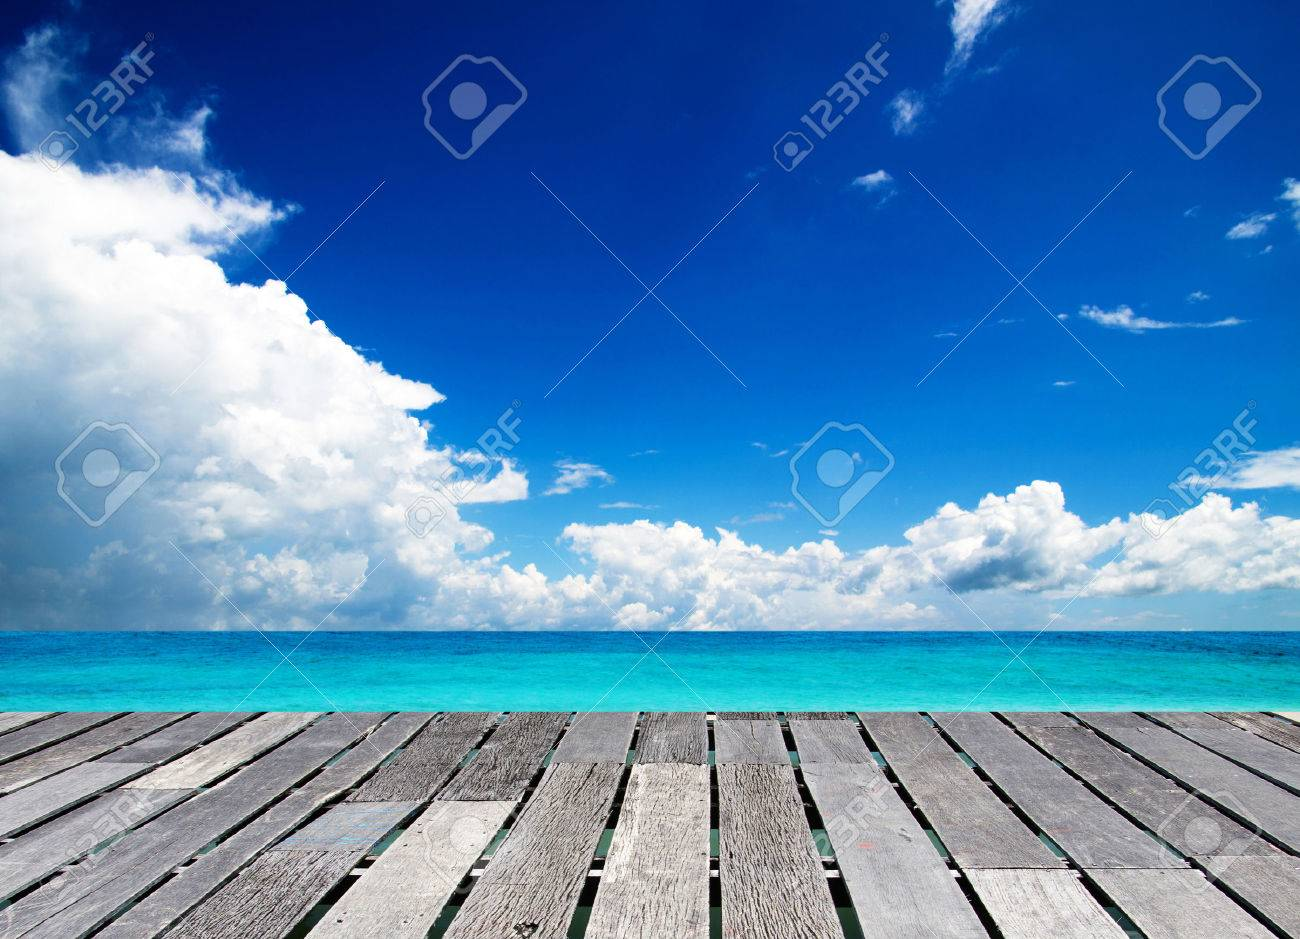 beautiful beach and tropical sea Stock Photo - 25148114